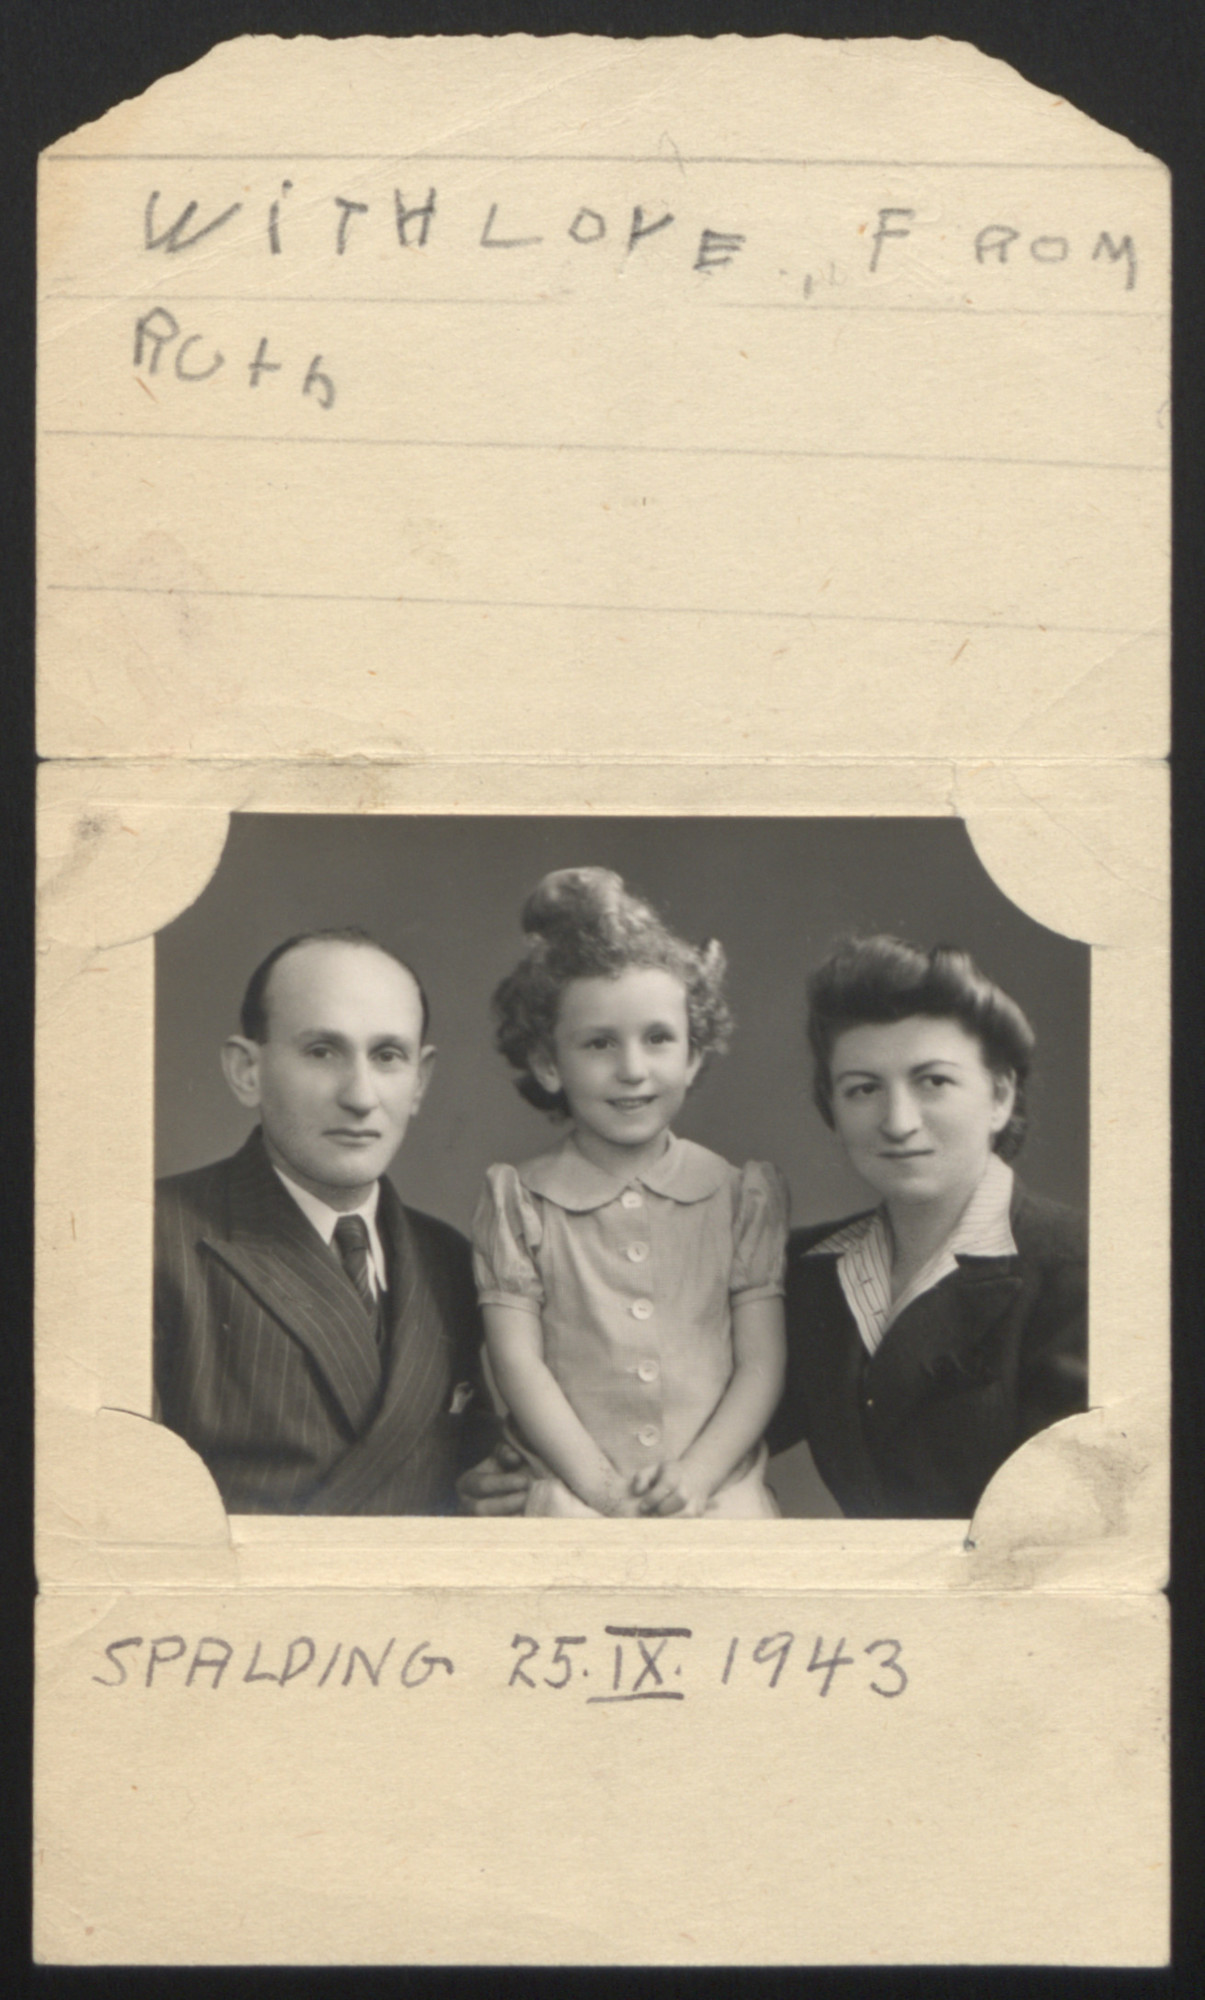 """Portrait of t Mechel, Ruth, and Lea Blumenstock in England where they stayed after the return of the St. Louis.  Photograph was later attached to the card signed, """"With love, Ruth,"""" and dated """"Spalding, September 25, 1943."""